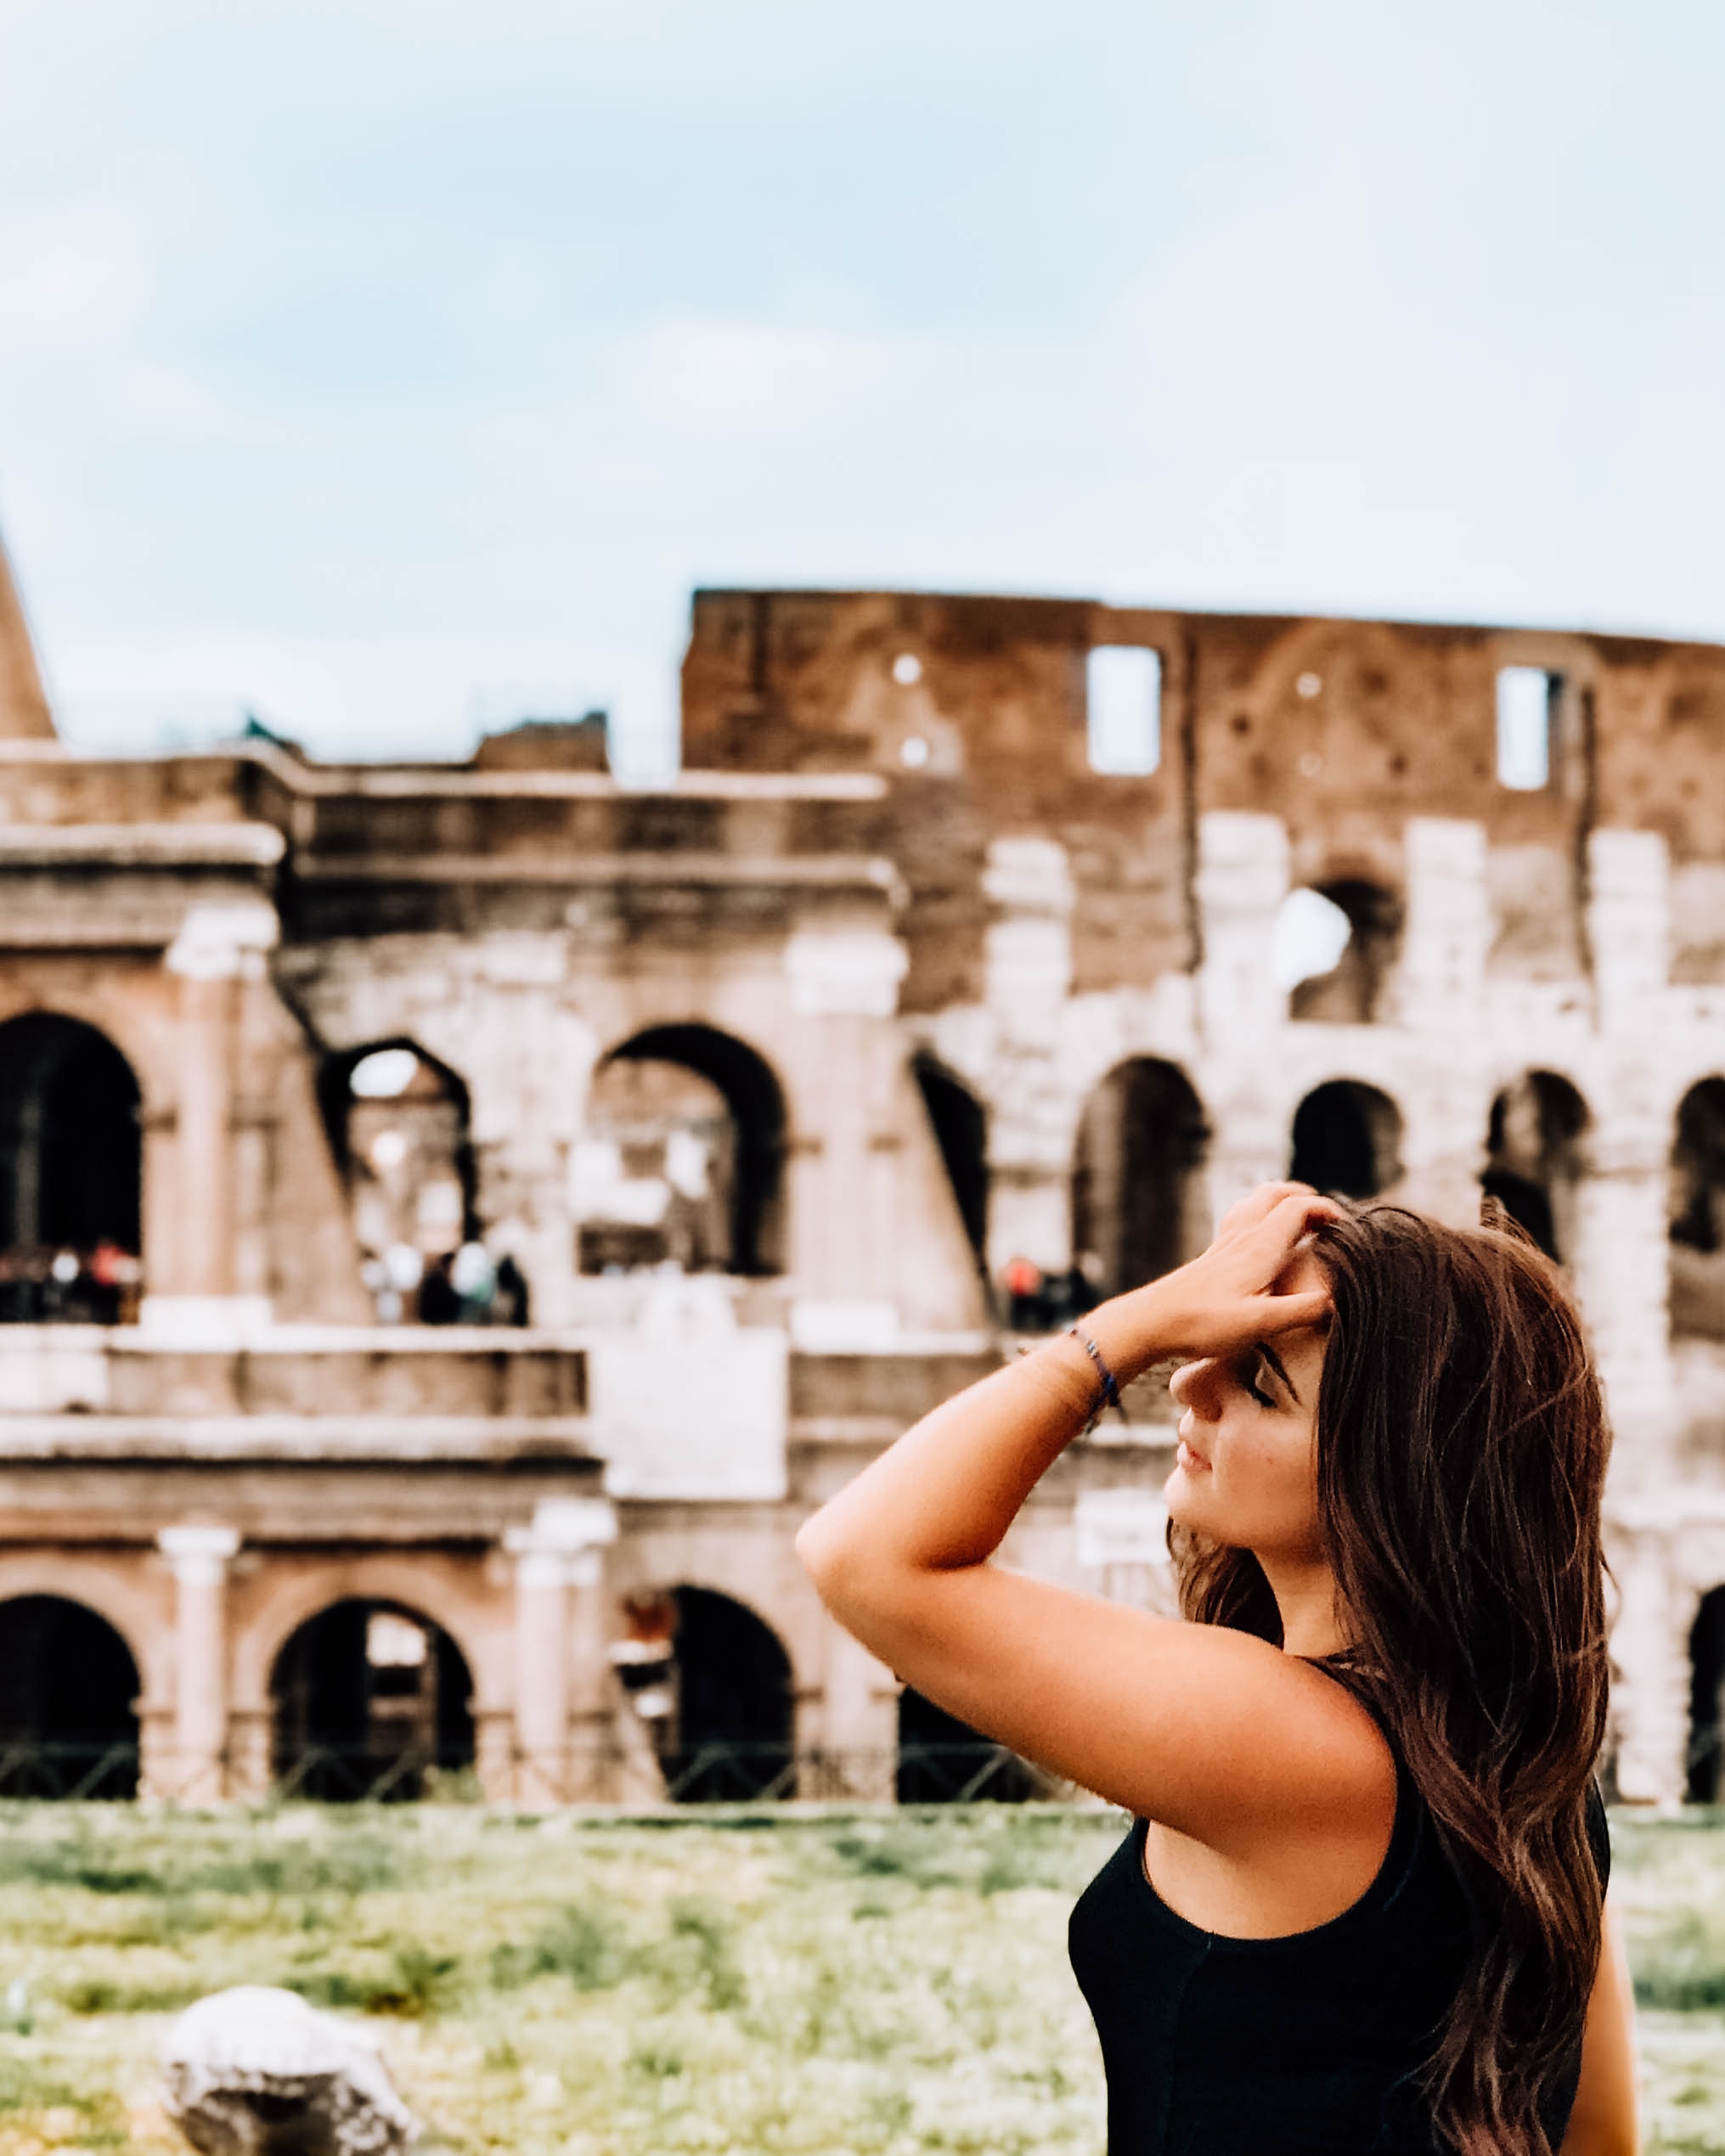 step by step guide to staying safe as a solo female traveler